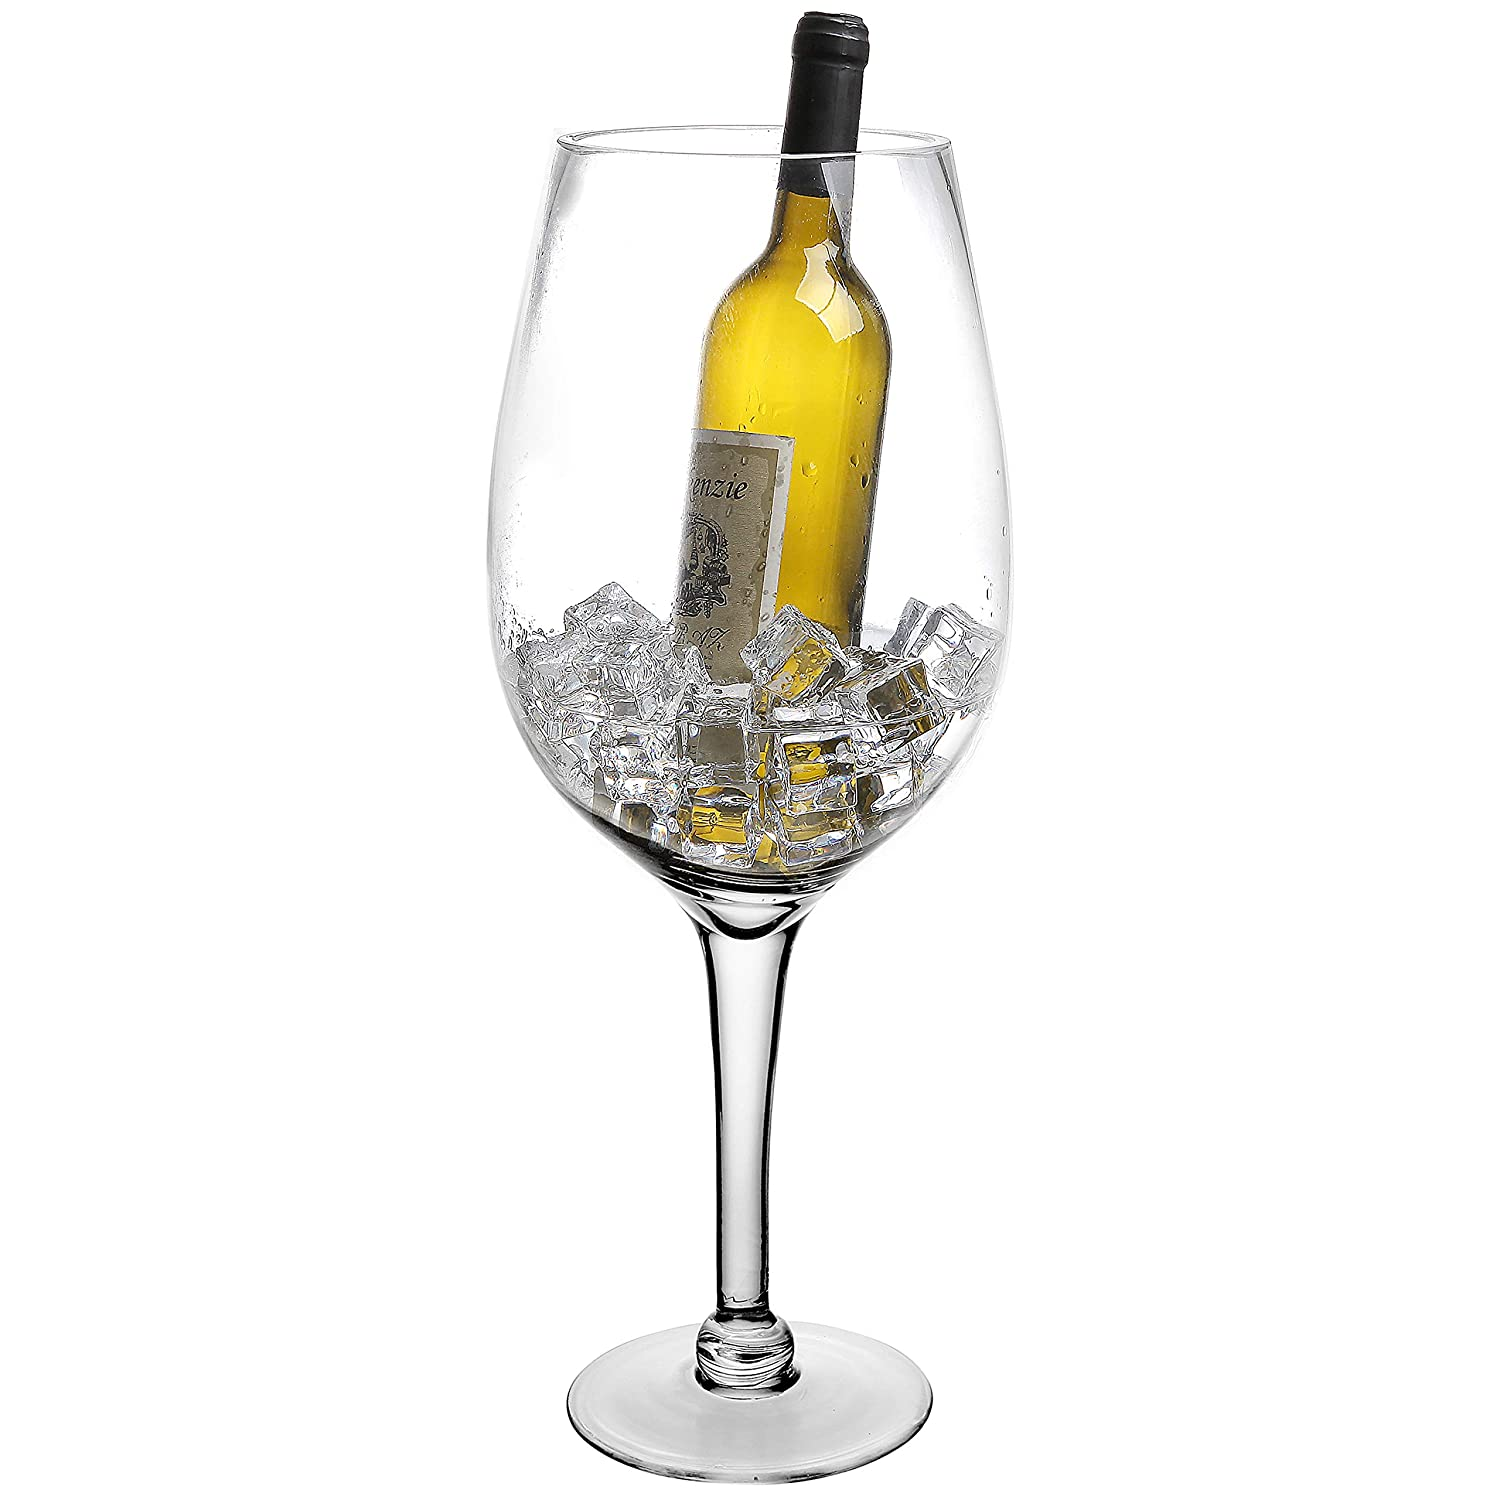 20 Inch Giant Clear Decorative Hand Blown Wine Glass Novelty Stemware/Champagne Magnum Chiller